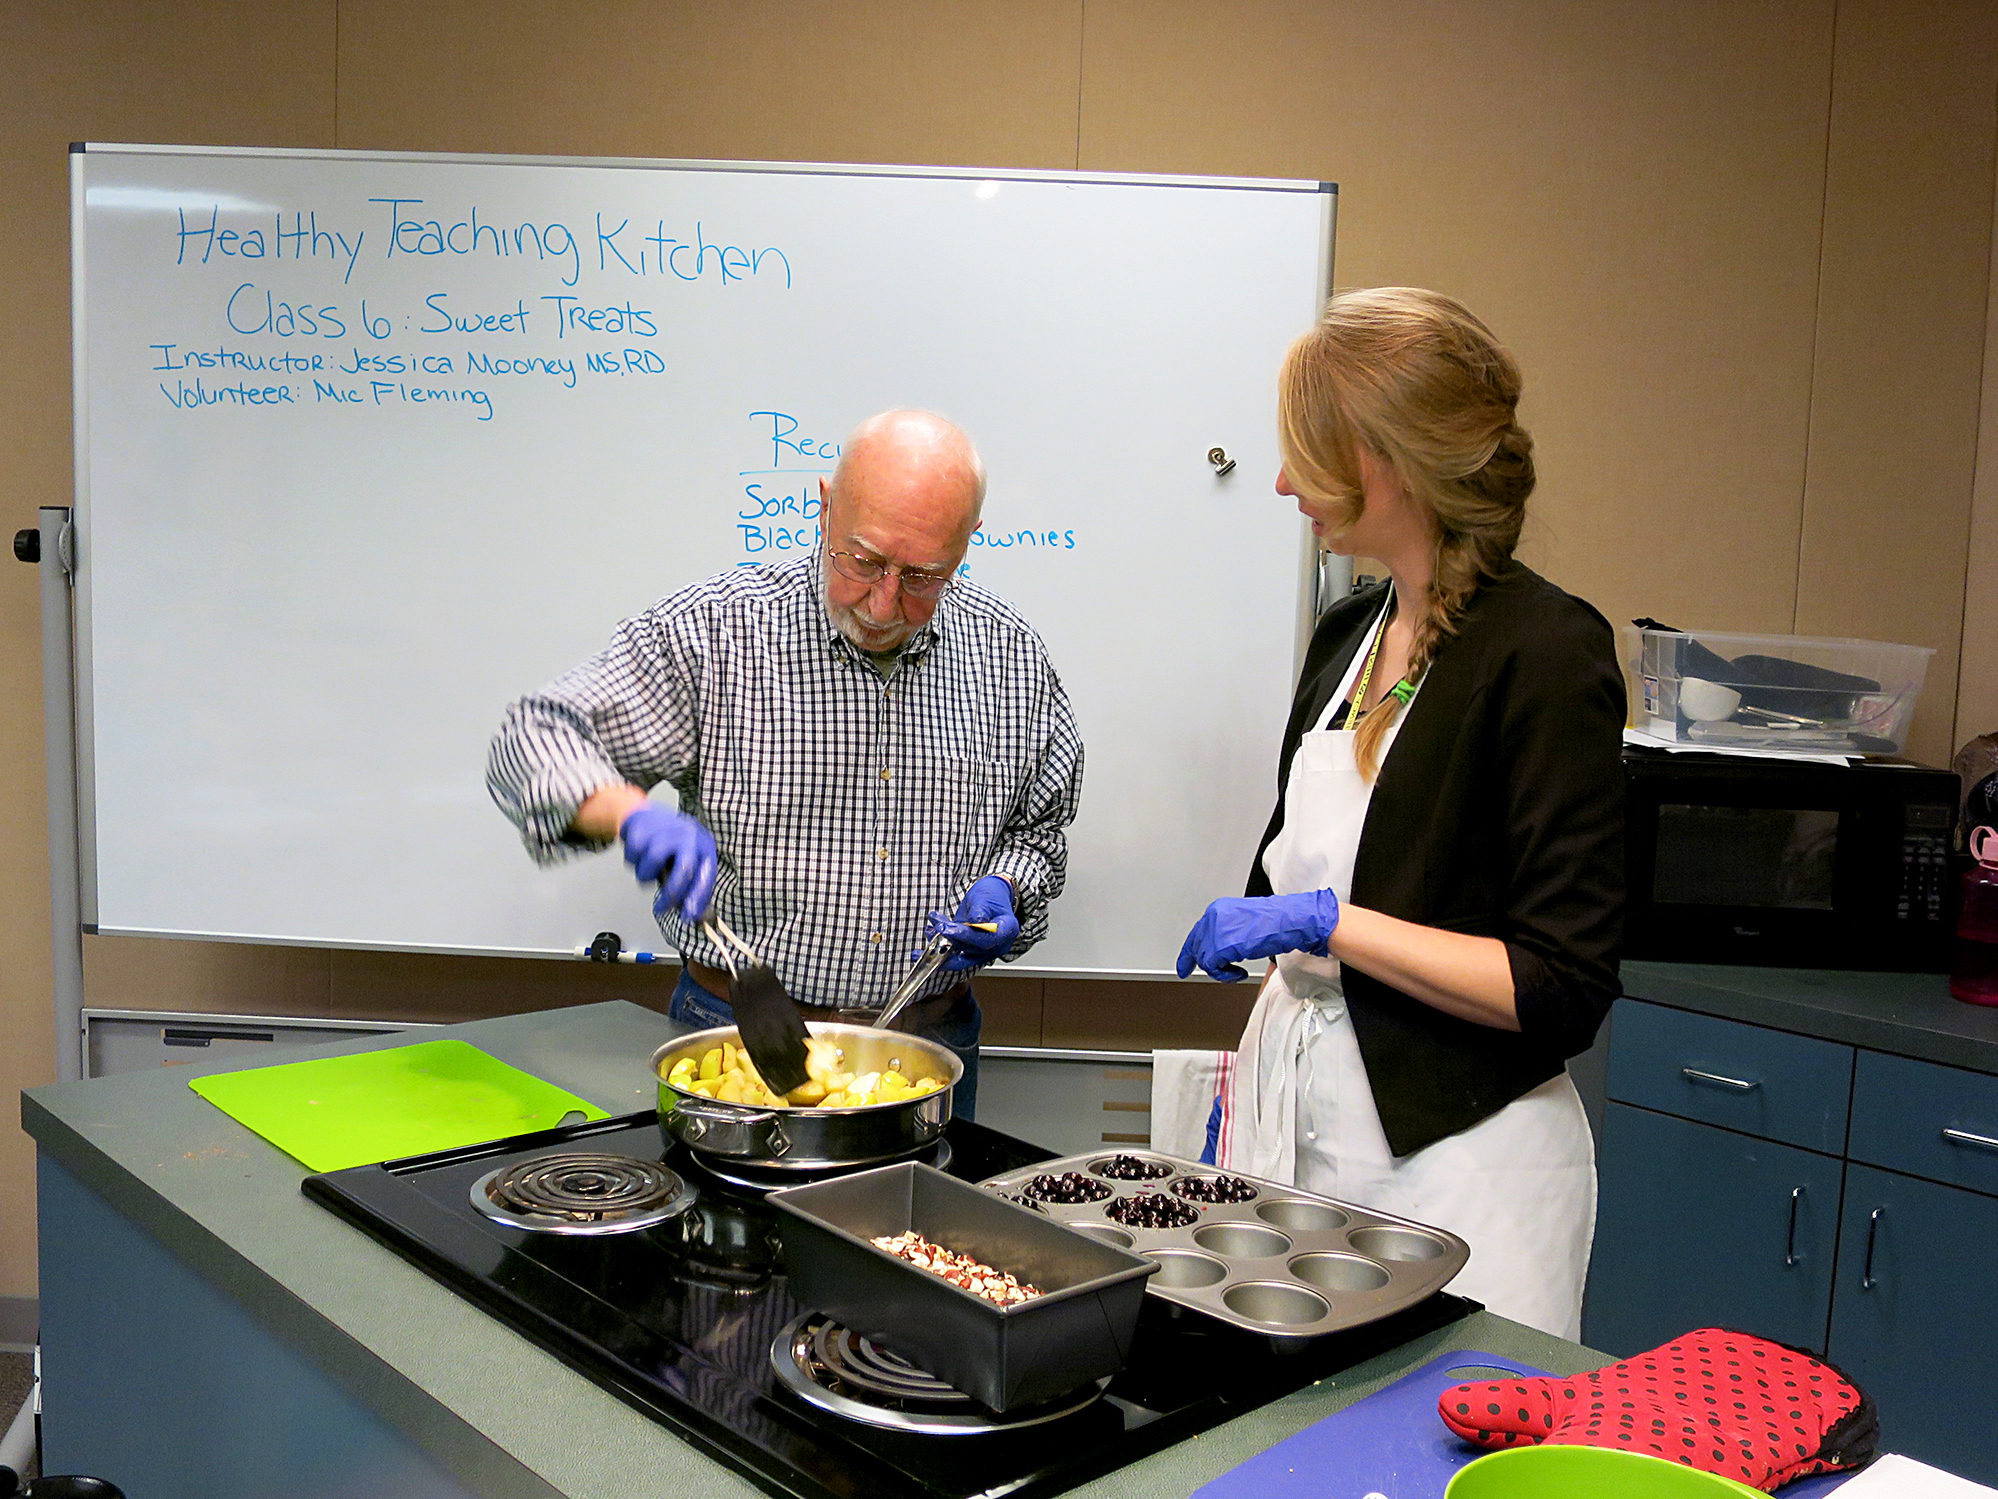 Ray Spaulding cooks apples in front of a class on cooking healthful desserts at the Portland VA withJessica Mooney, right, a clinical dietitian. About 80 percent of veterans are overweight and obese and another quarter have diabetes, according to the Department of Veterans Affairs. Conrad Wilson/OPB